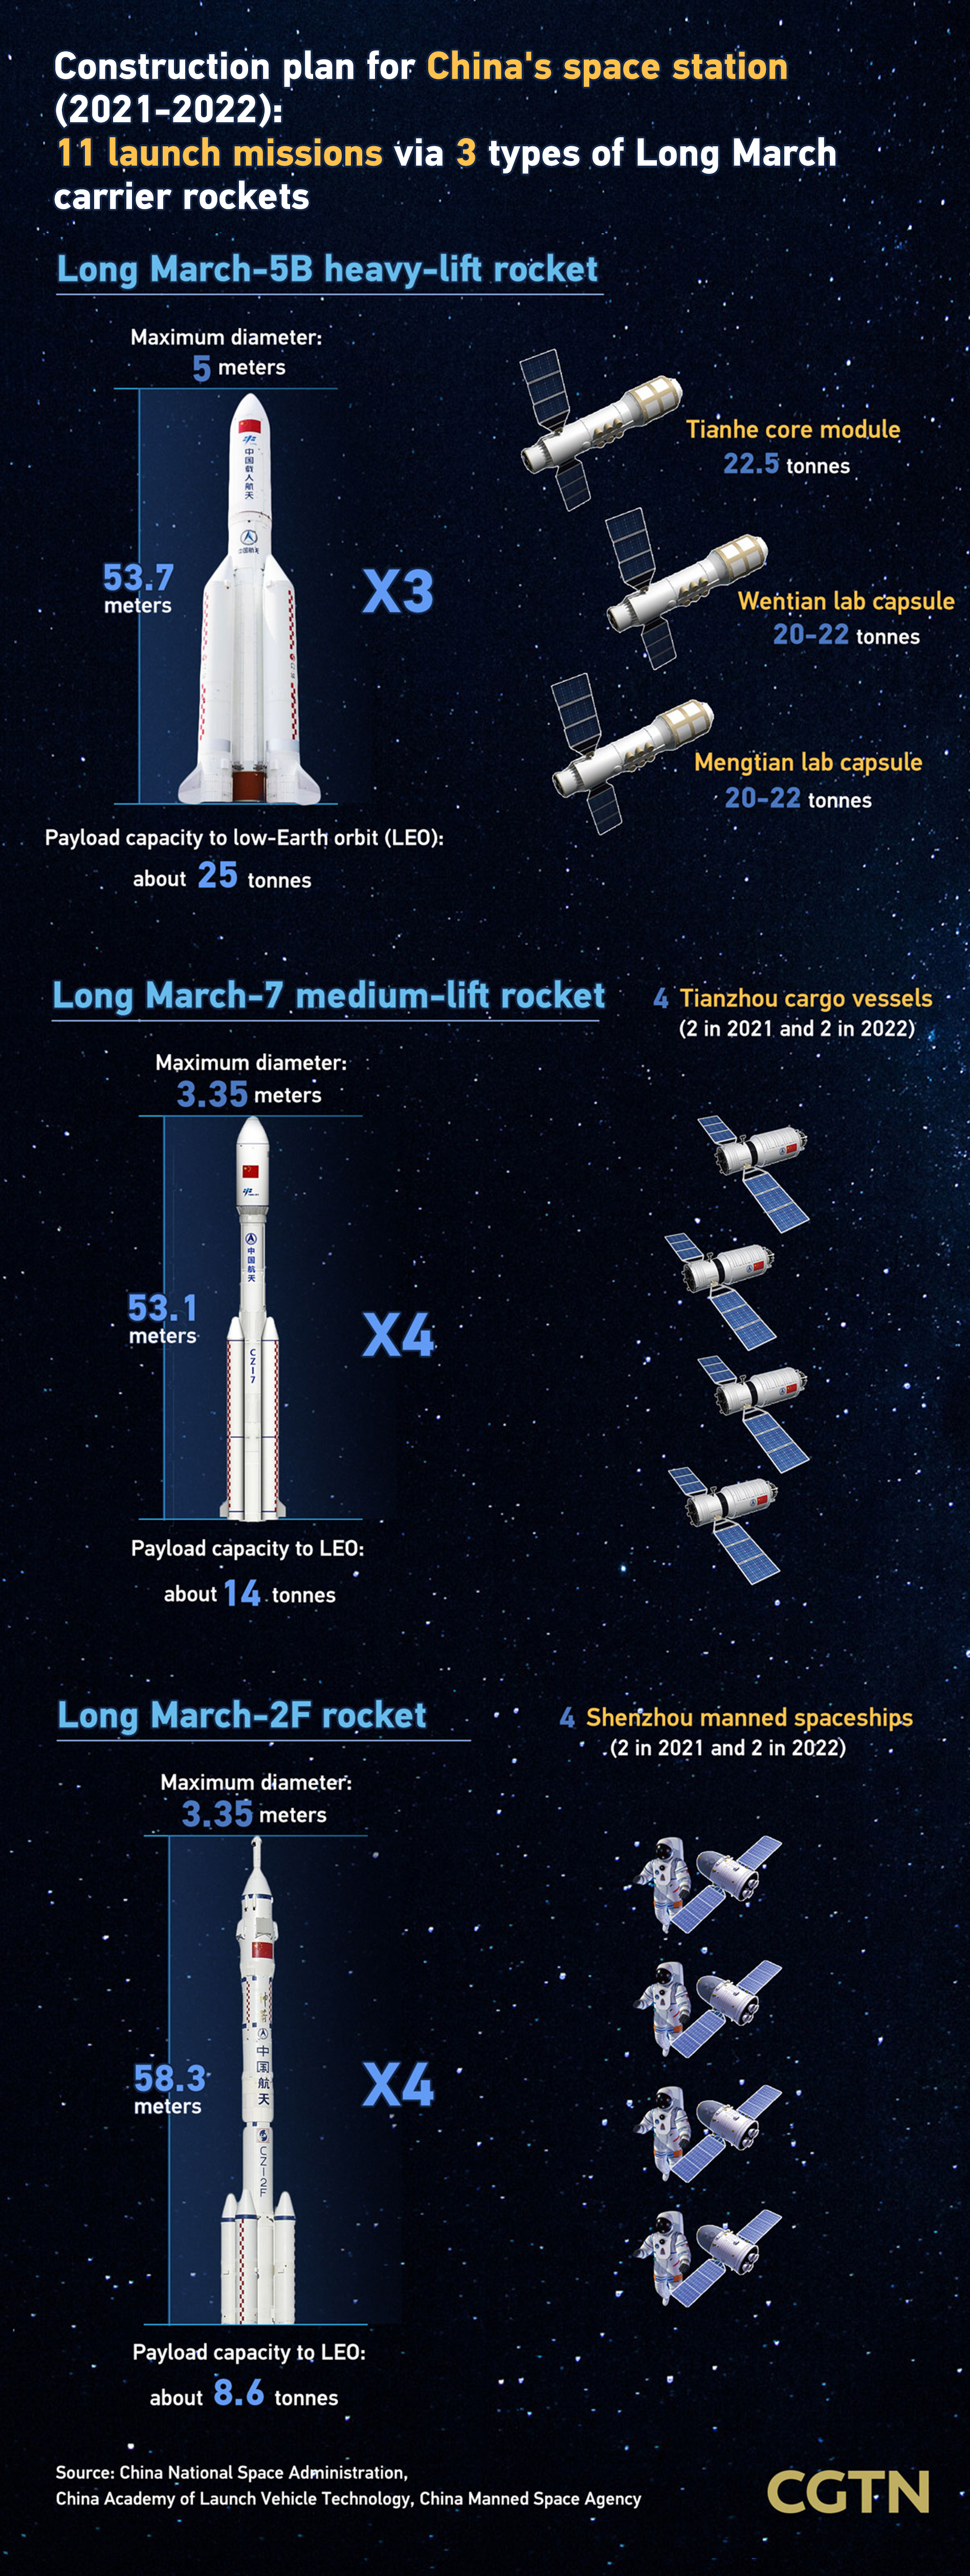 - d1e3e2abab71467983061e14ee401f3e - A month in China Space Station: What's been done so far?